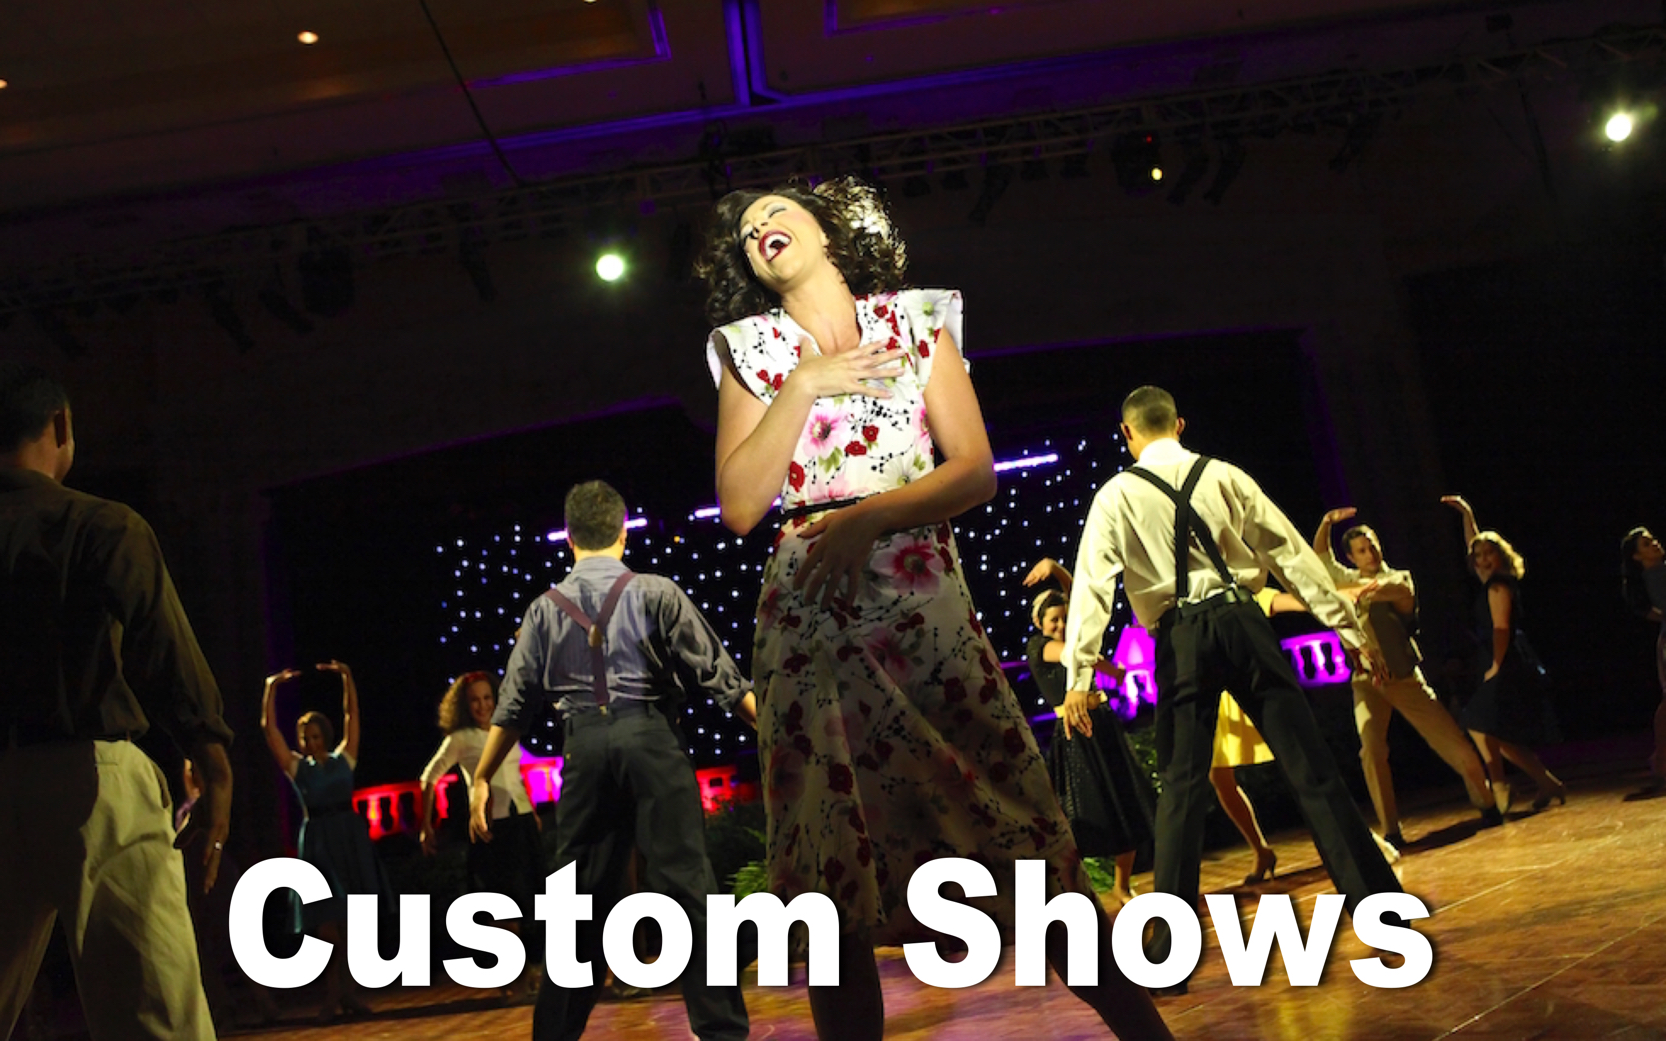 Custom Shows